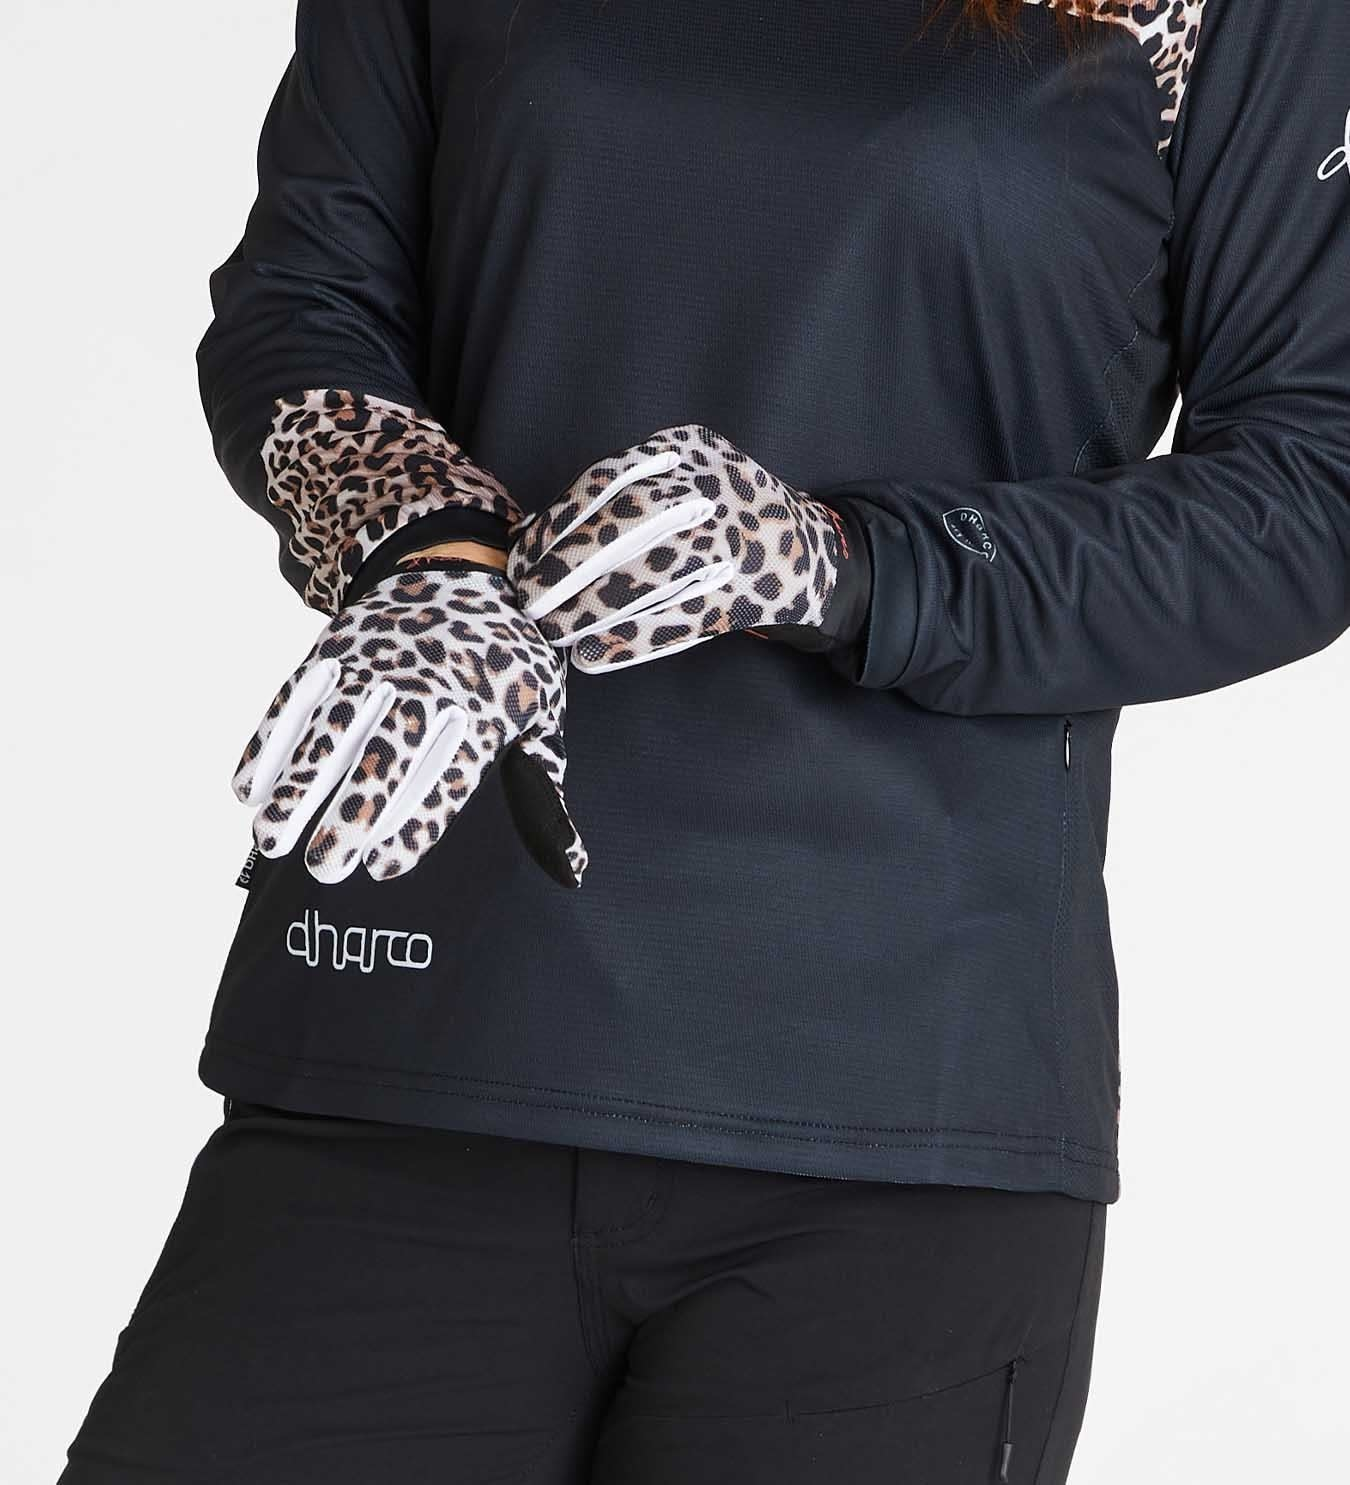 DHaRCO DHaRCO Women's MTB Gloves